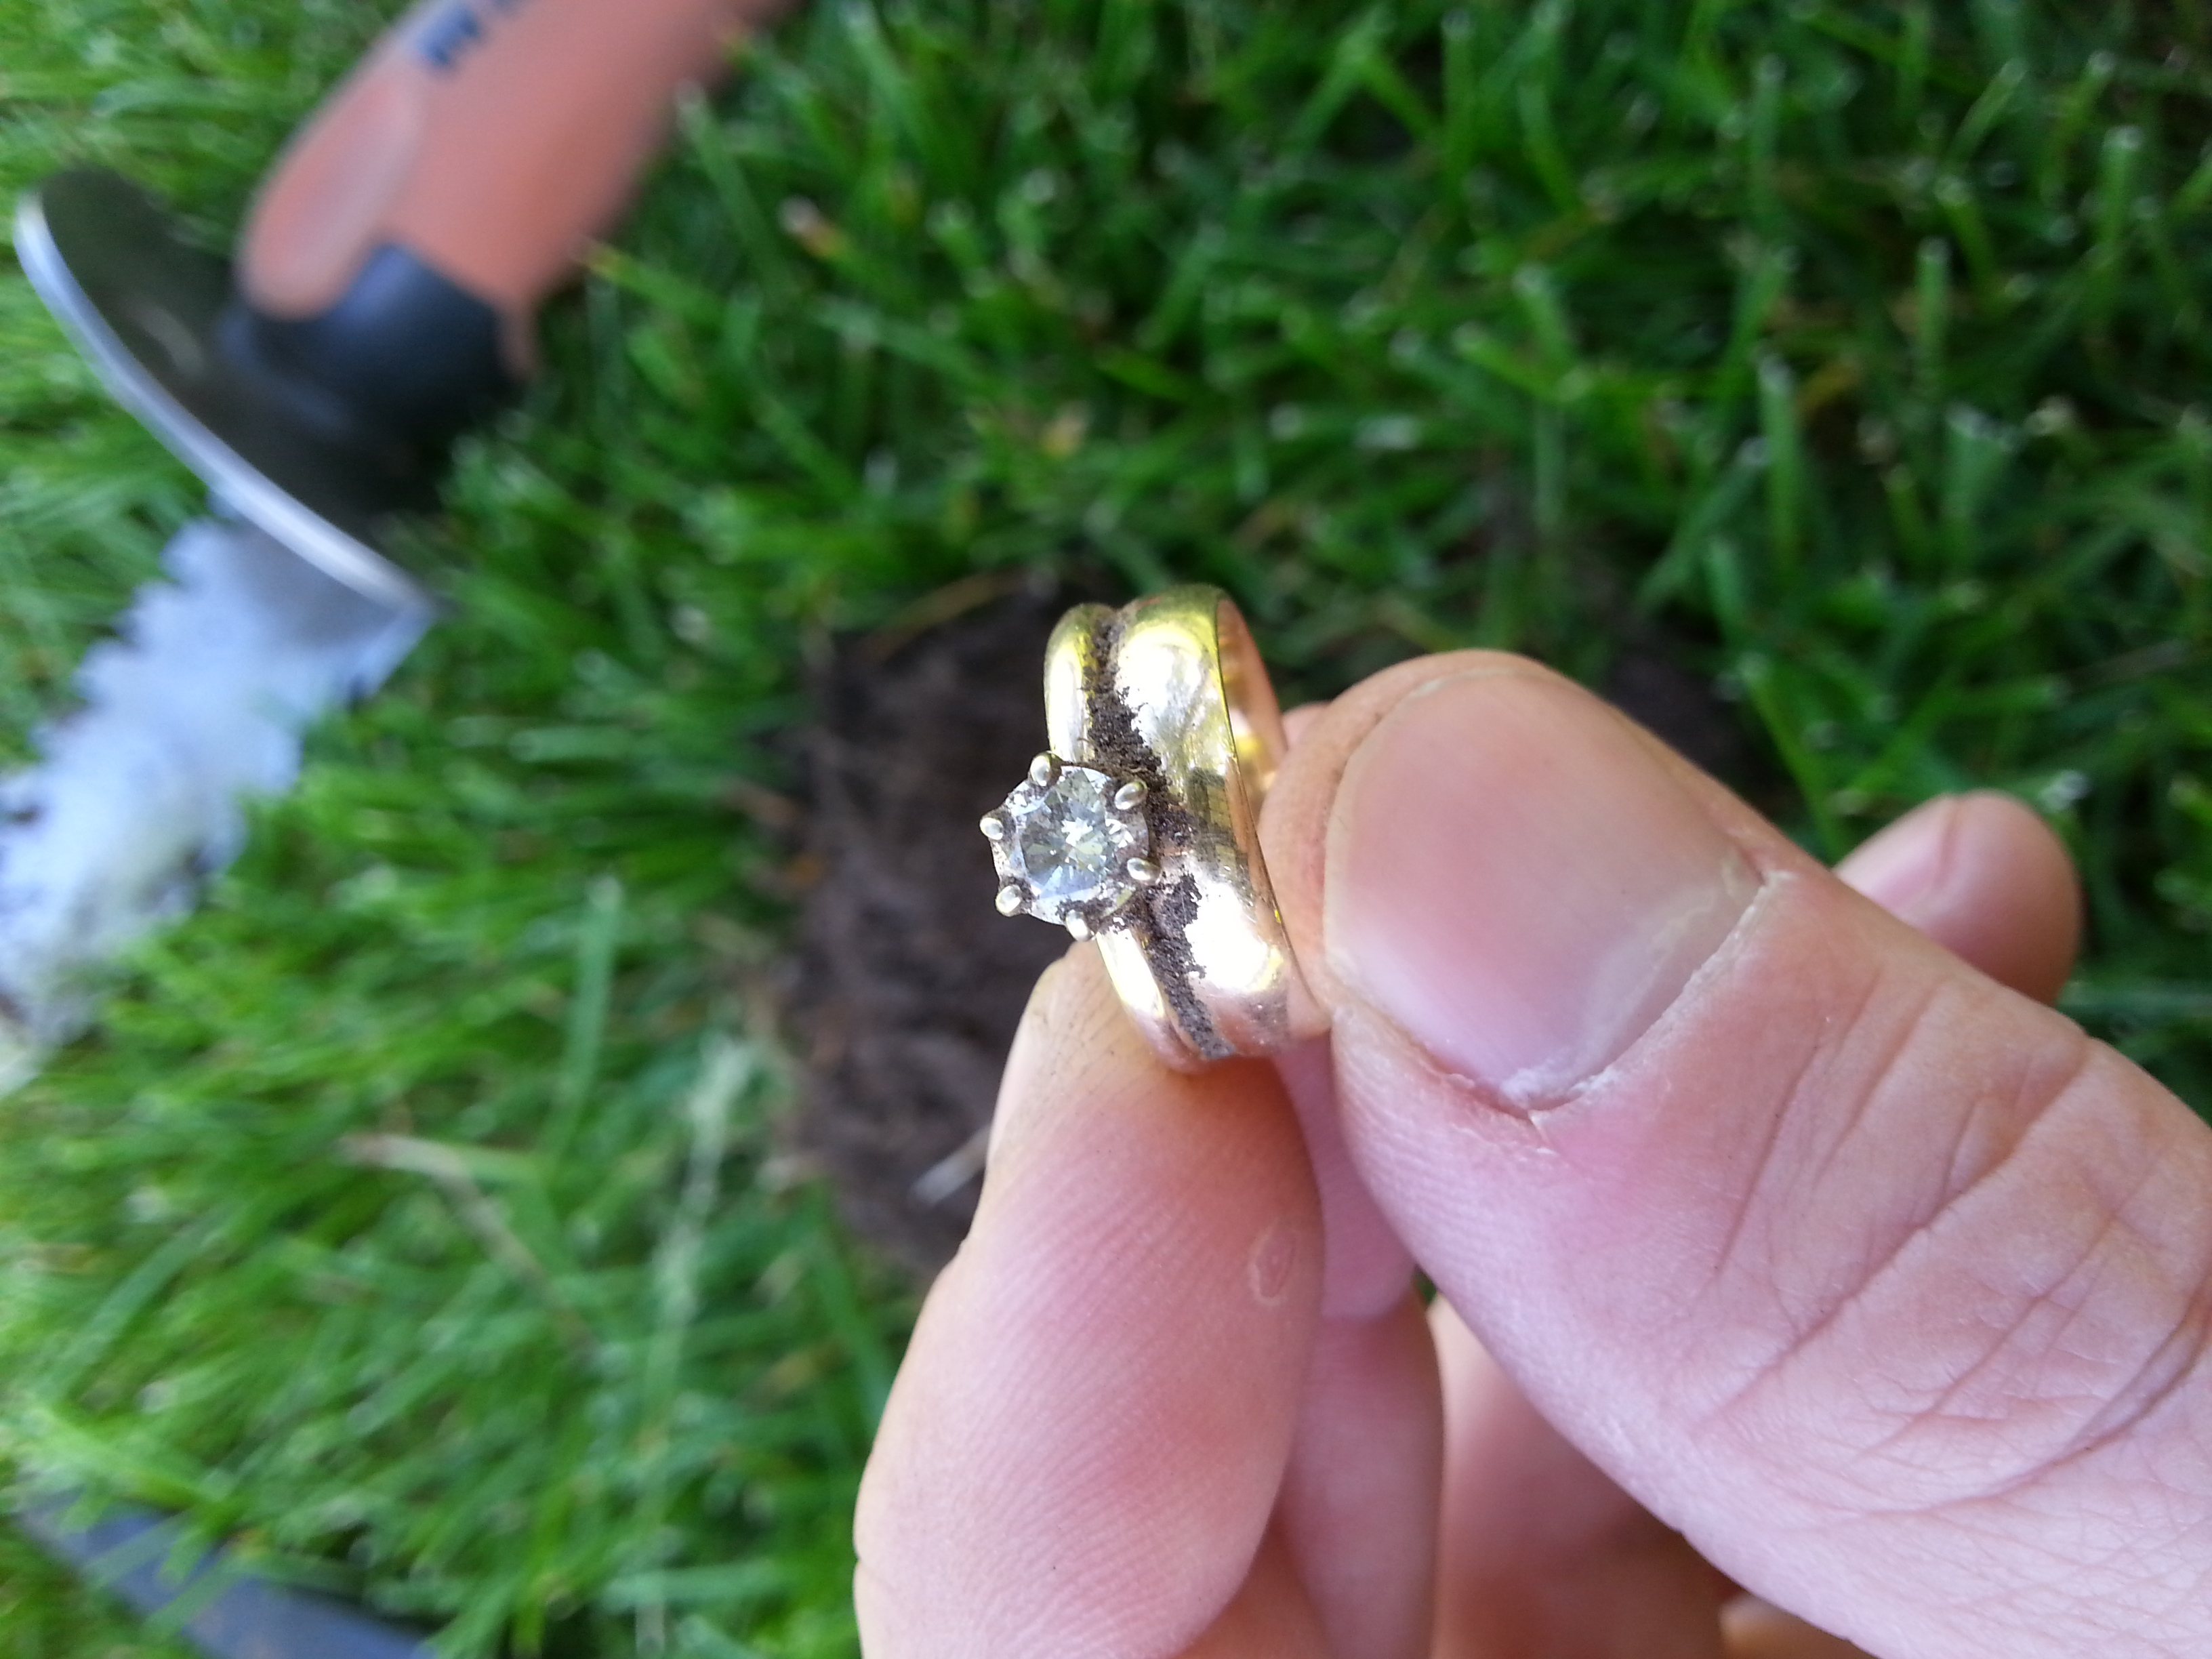 Metal Detector To Find Ring